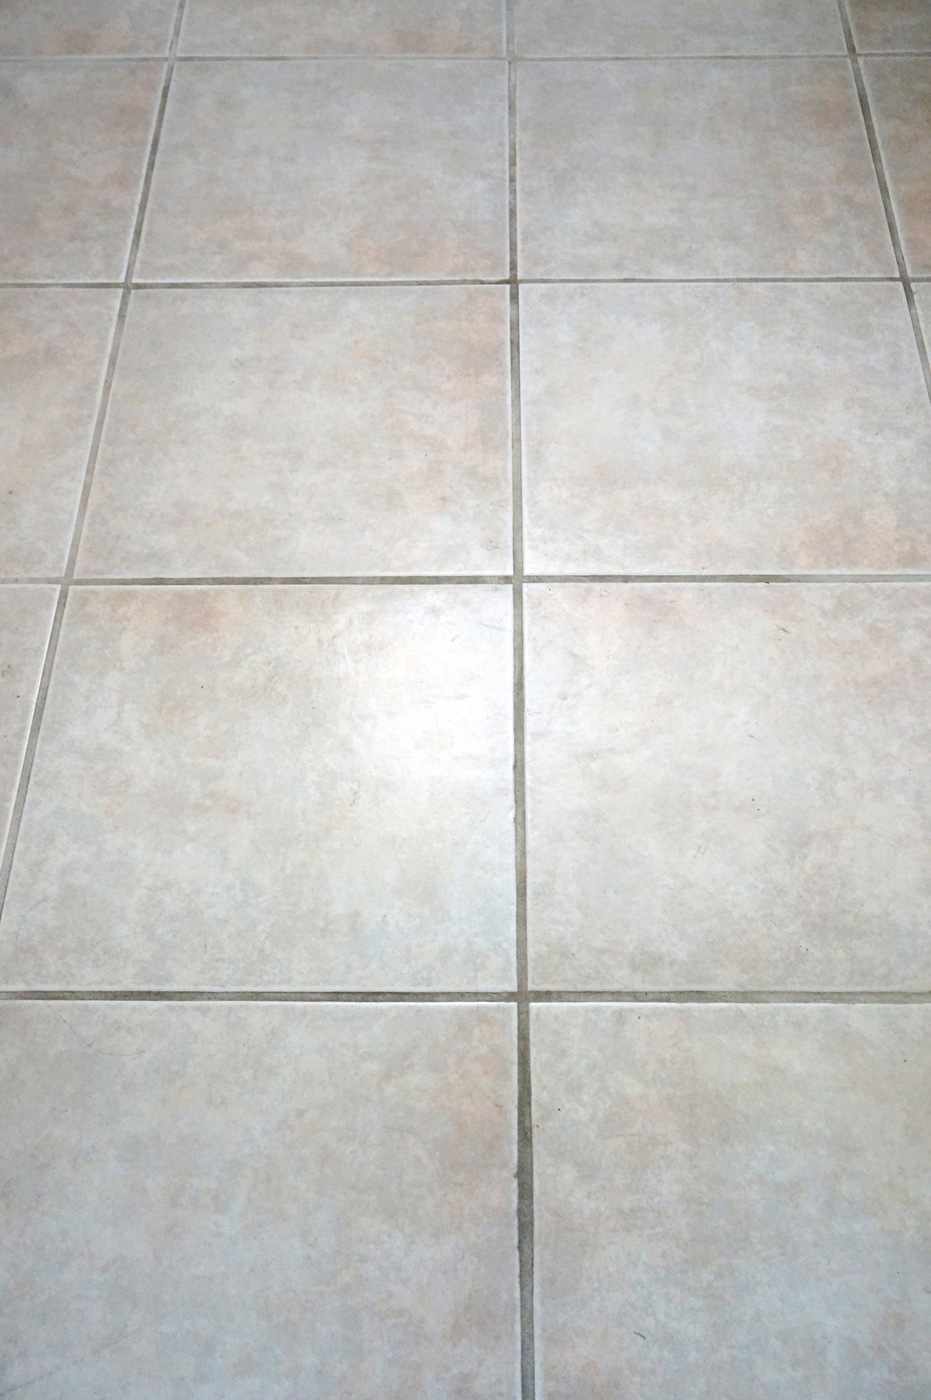 Grout floor before shot